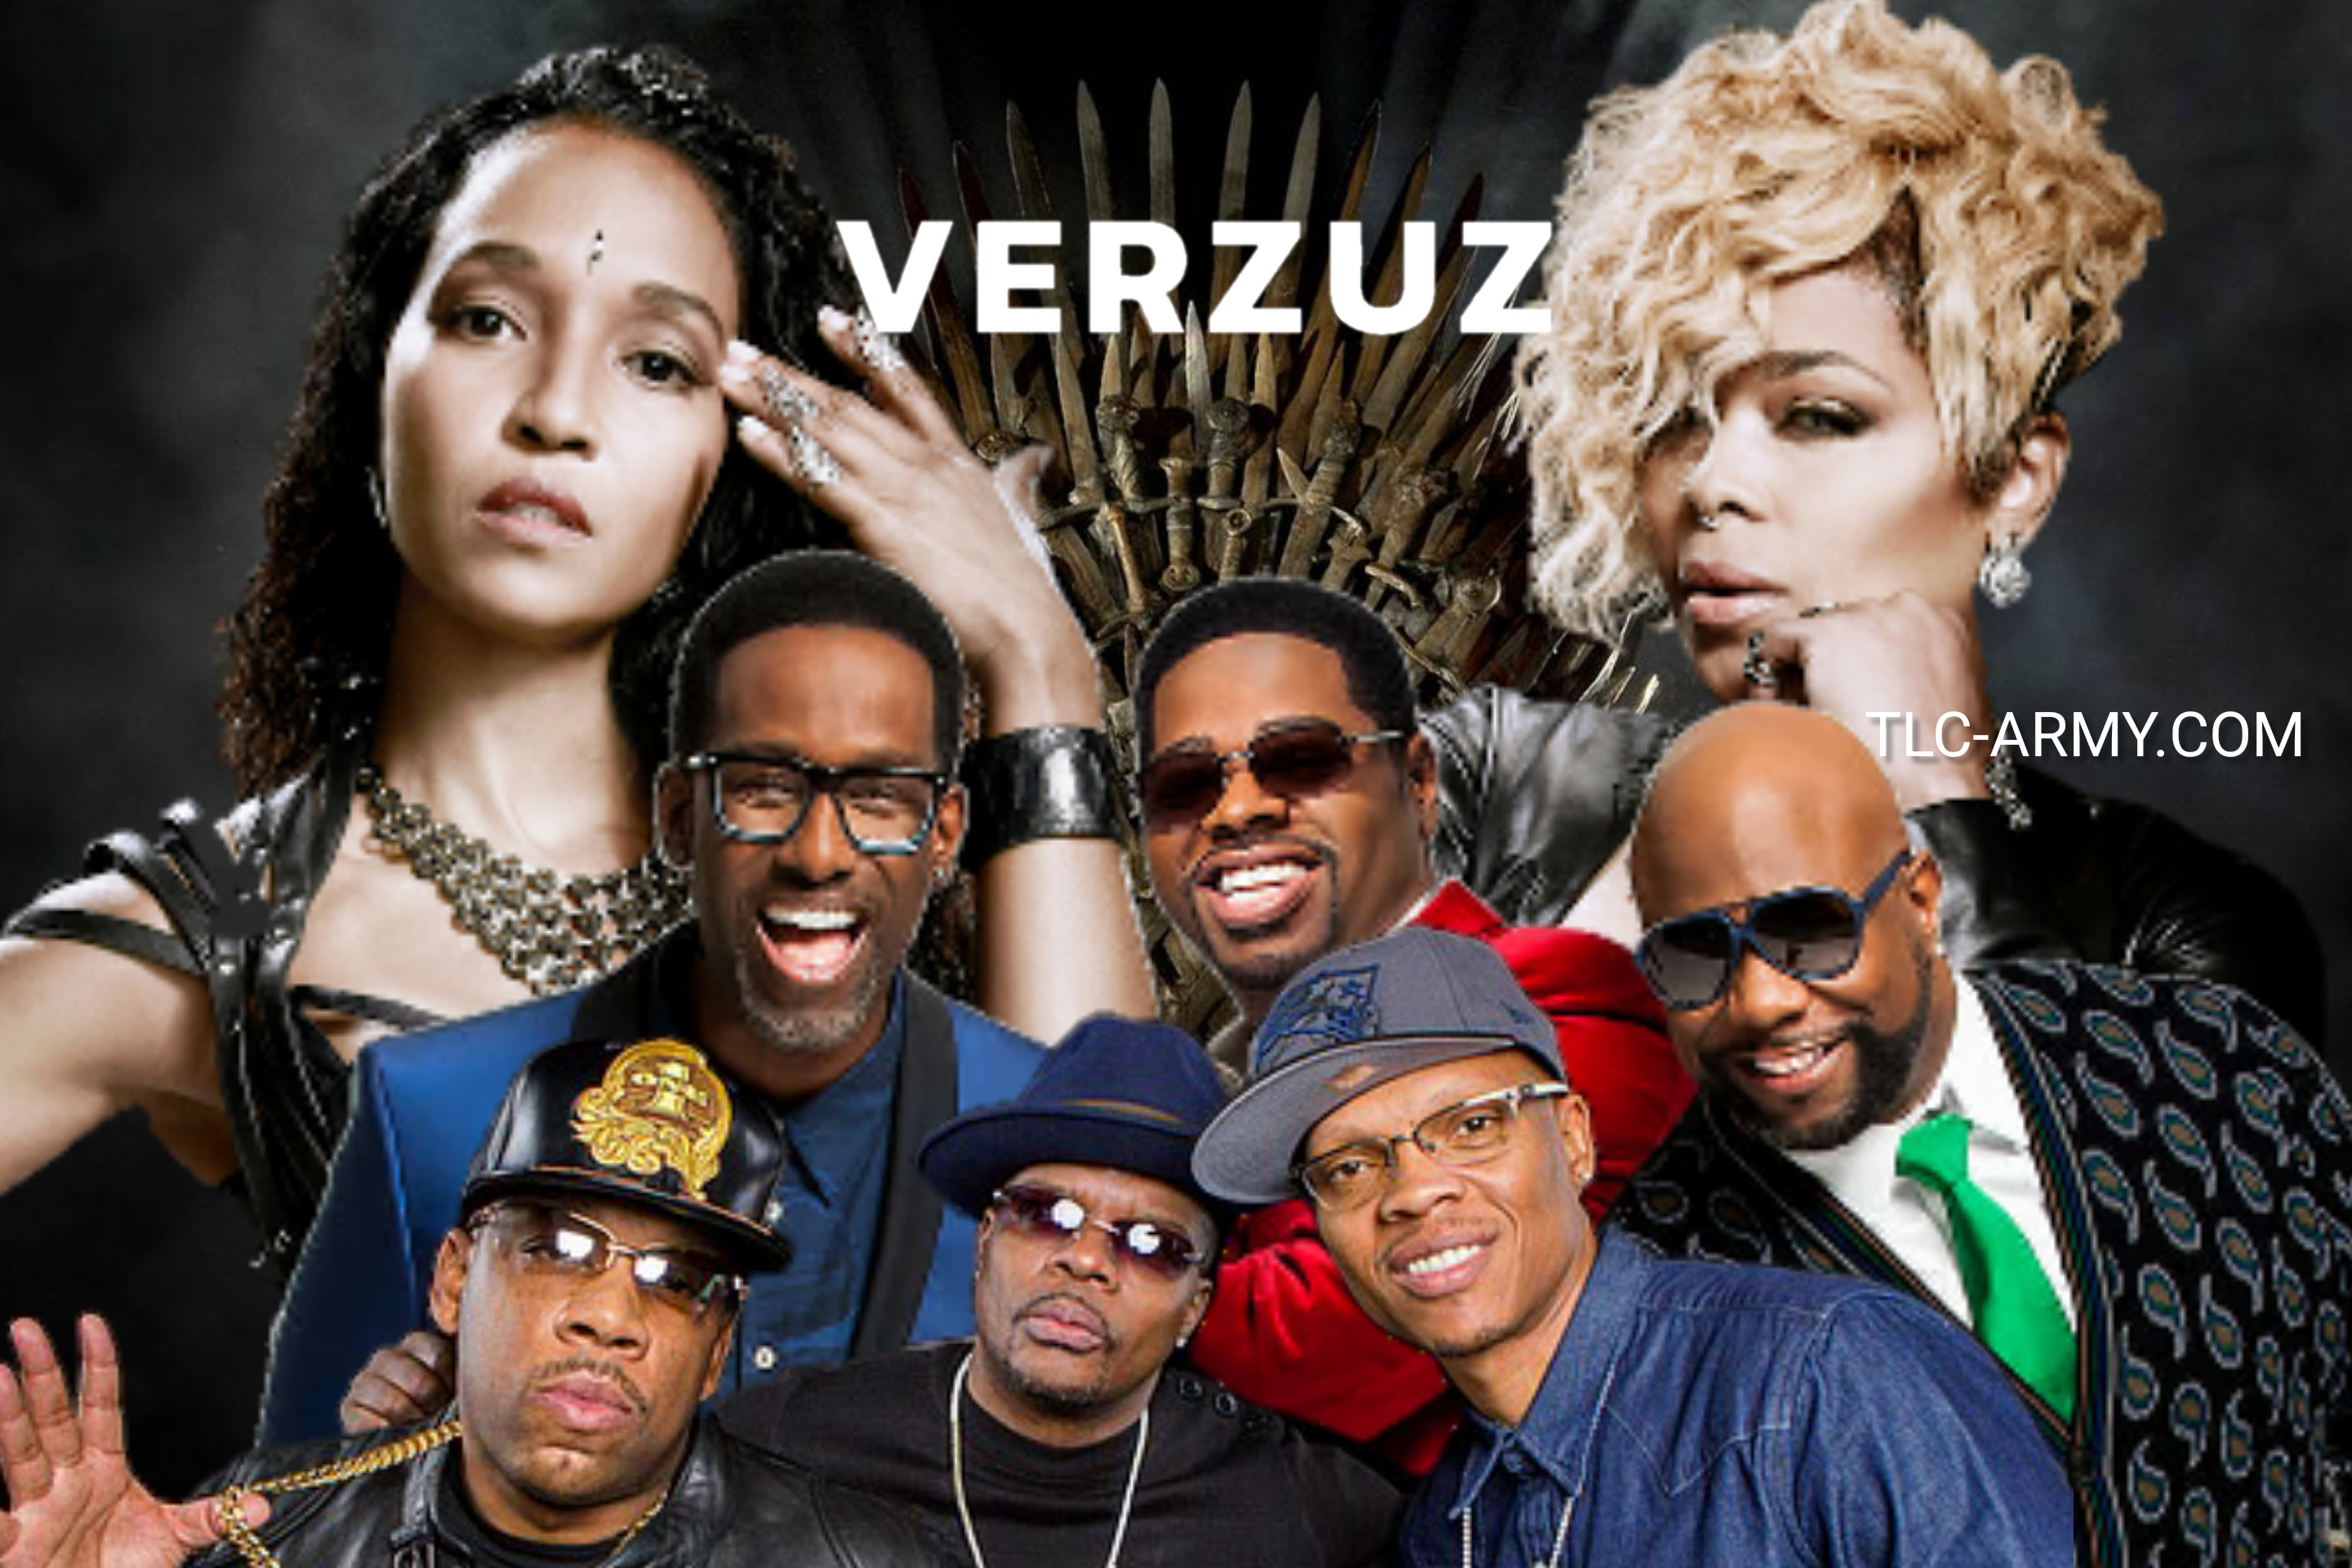 TLC Say Their Ideal Choice For Verzuz Would Be Boyz II Men or BBD / T-Boz Clears Up Misconceptions